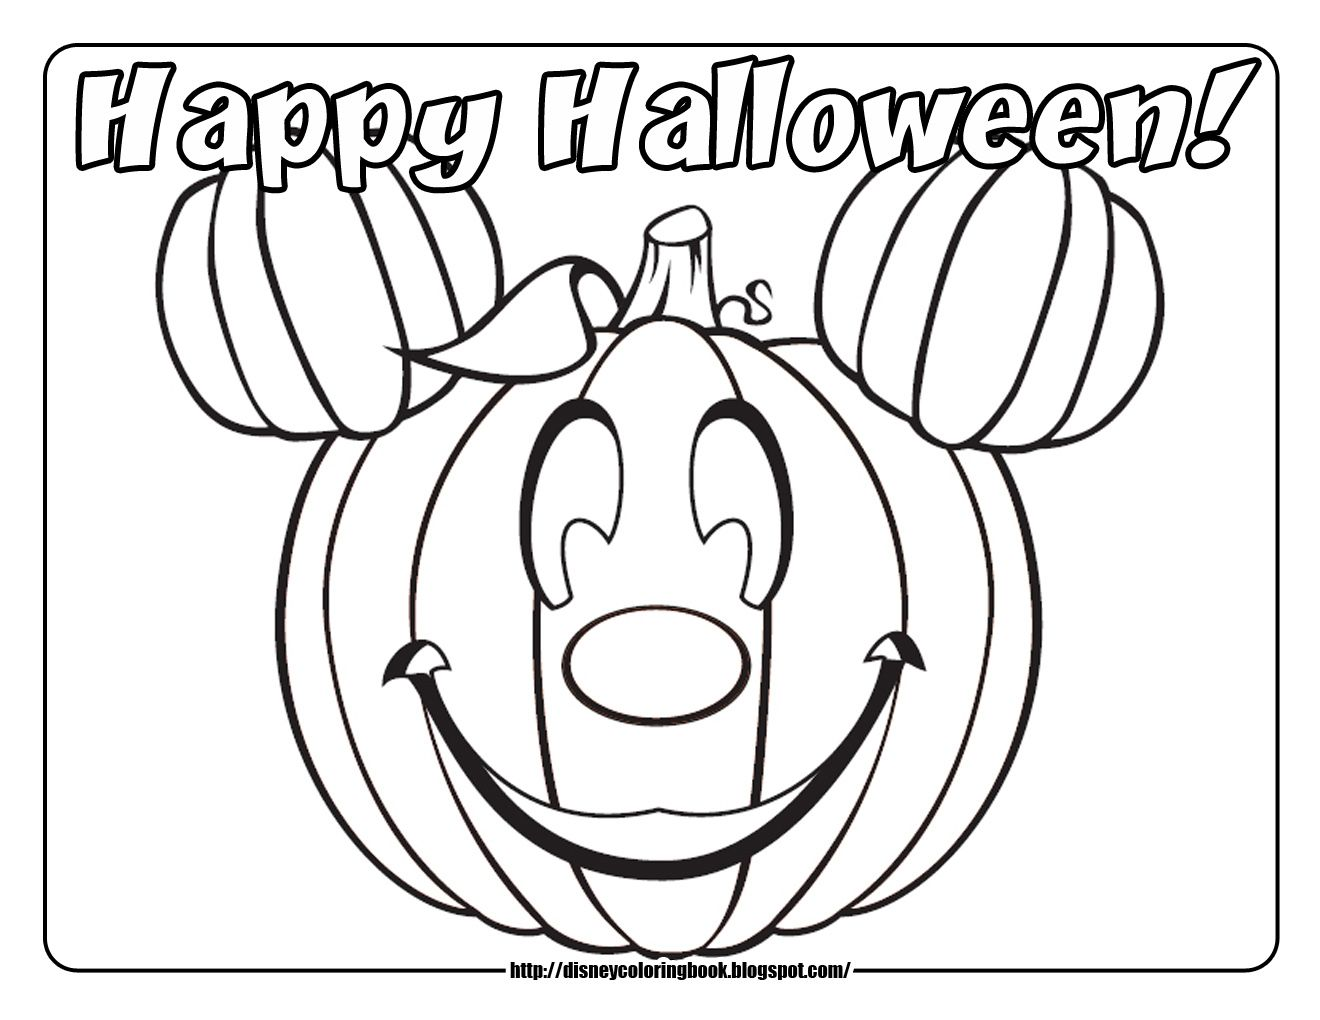 httpcoloringscodisney halloween coloring pages for kids